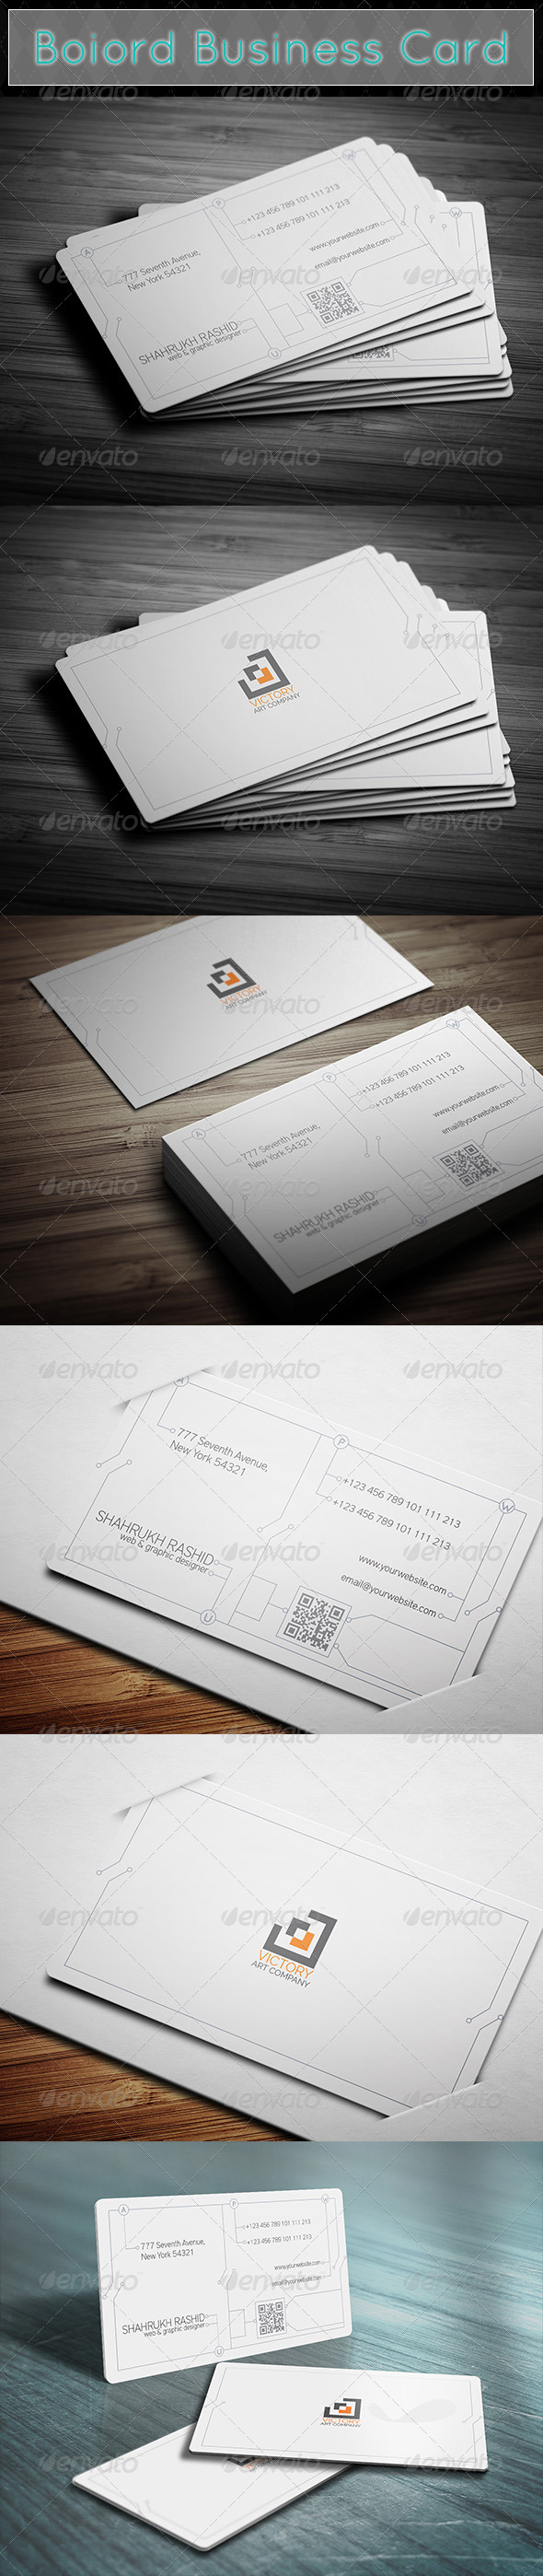 GraphicRiver Boiord Business Card 7660111